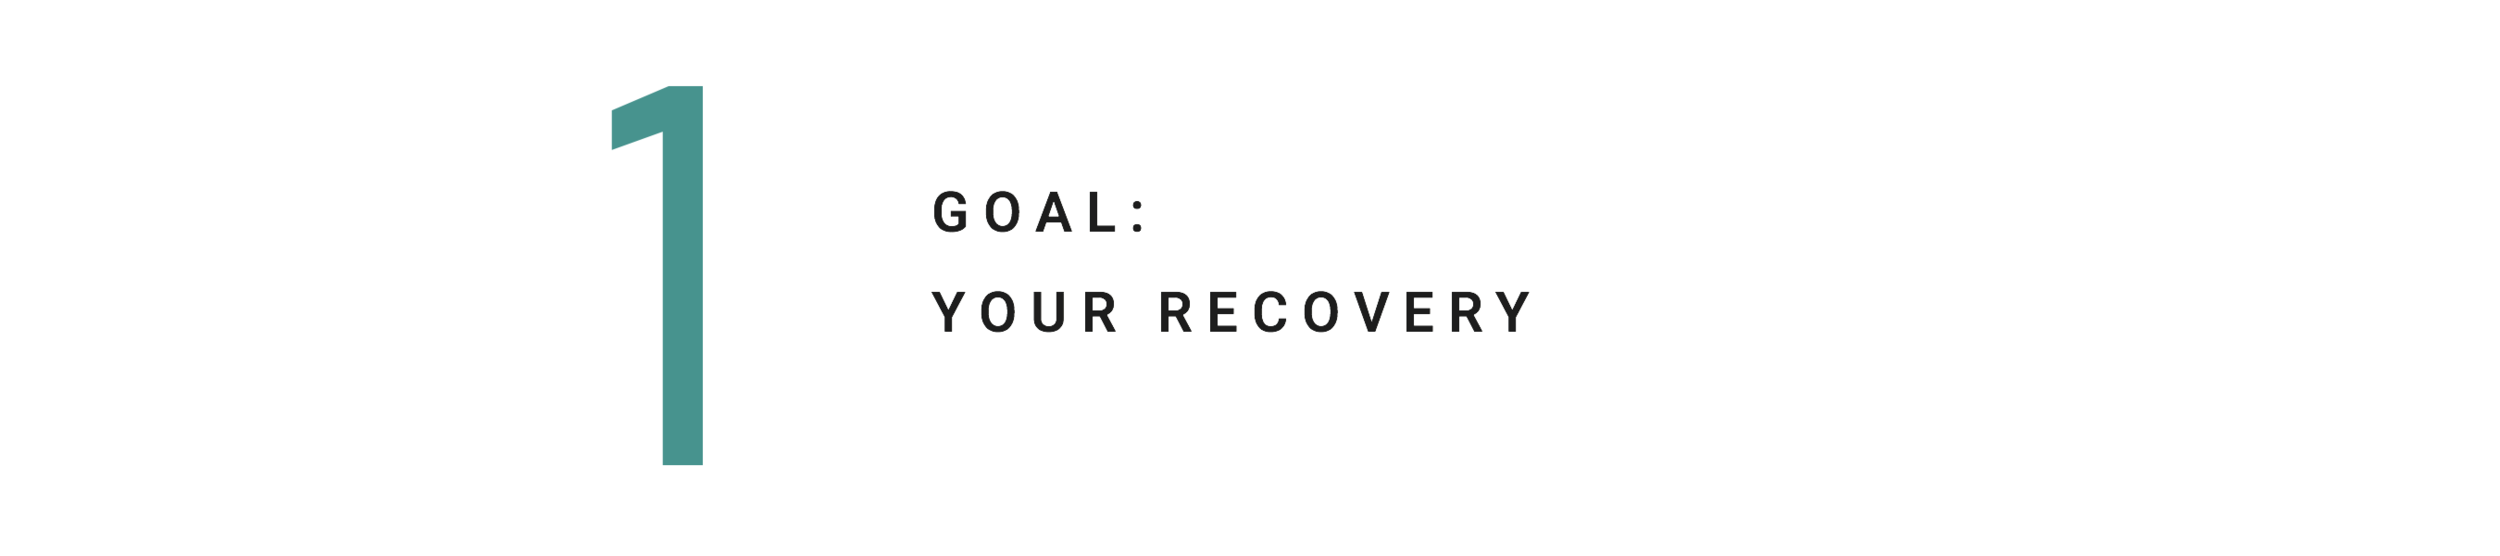 recovery3.png